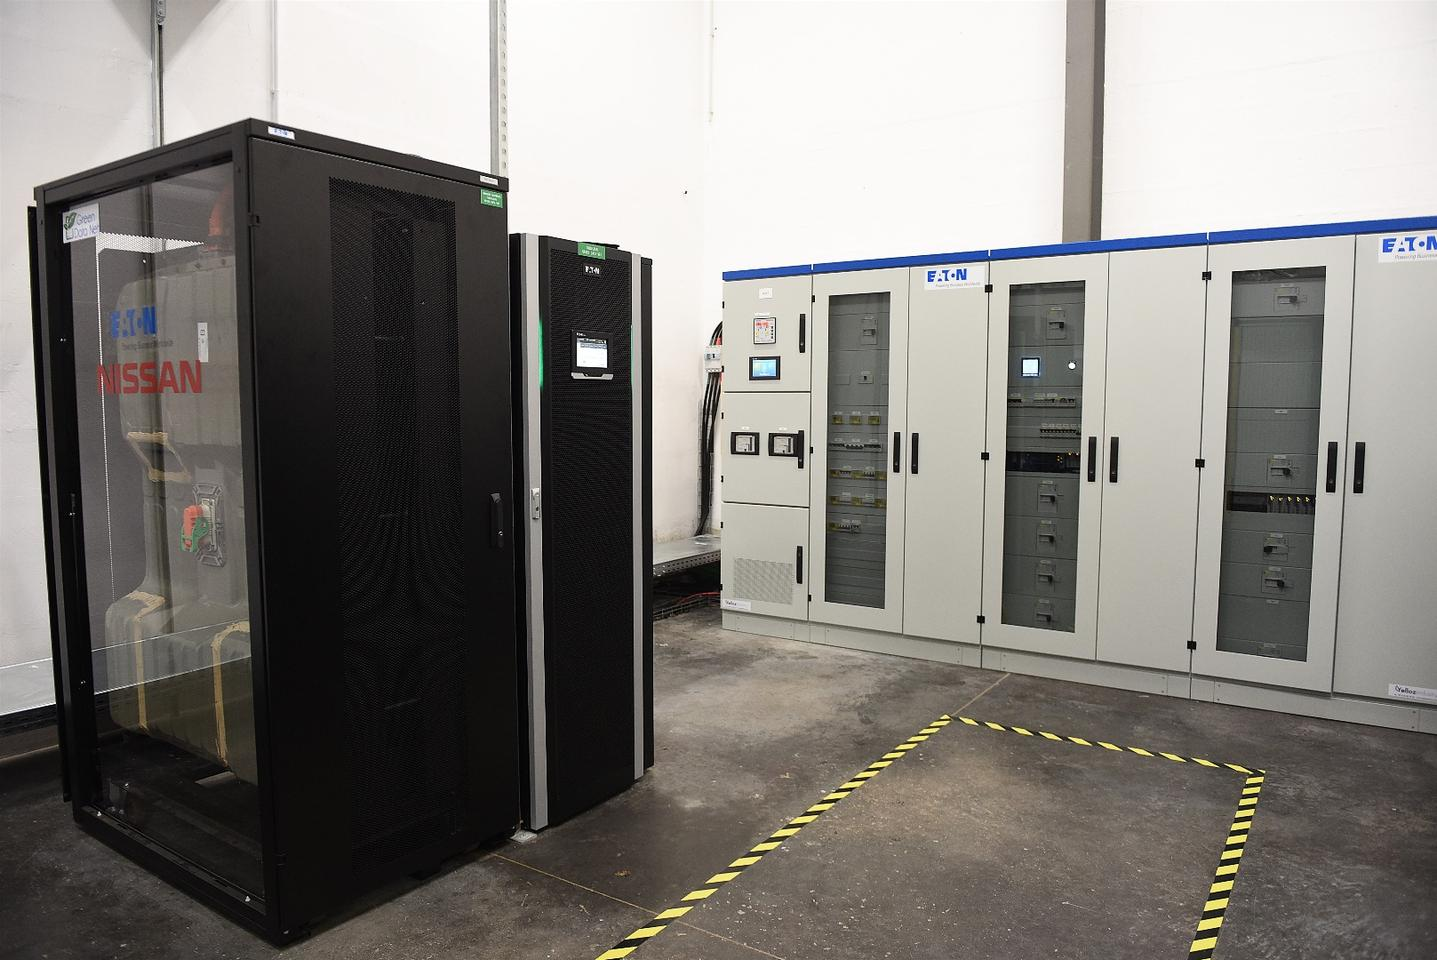 Nissan has teamed up with Eaton to repurpose old Leaf EV batteries for storing renewable energy in data centers